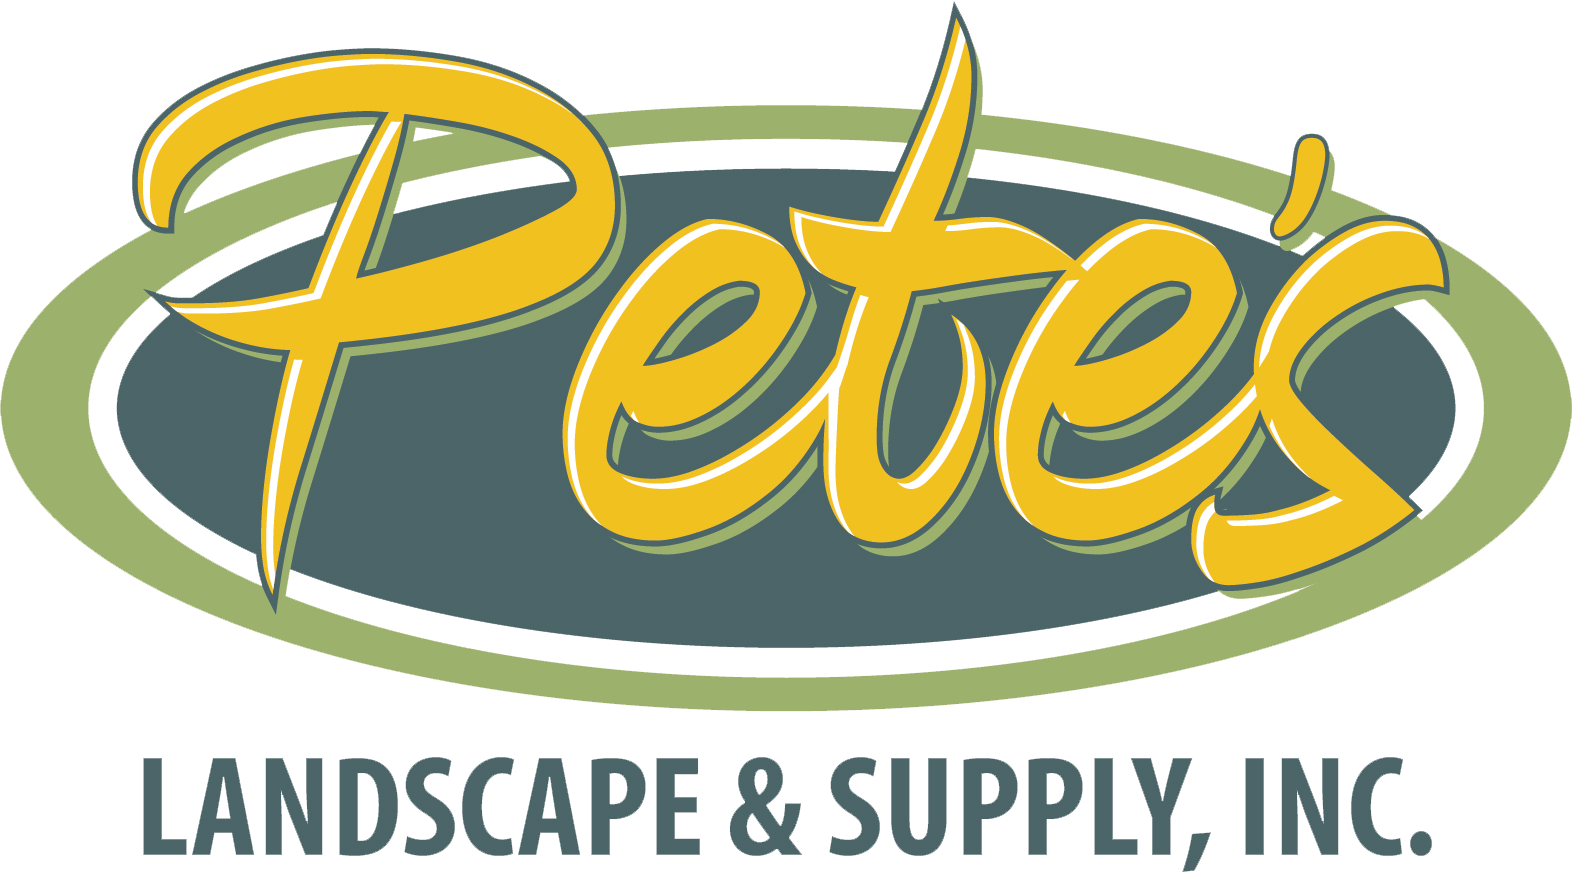 Petes Landscape & Supply